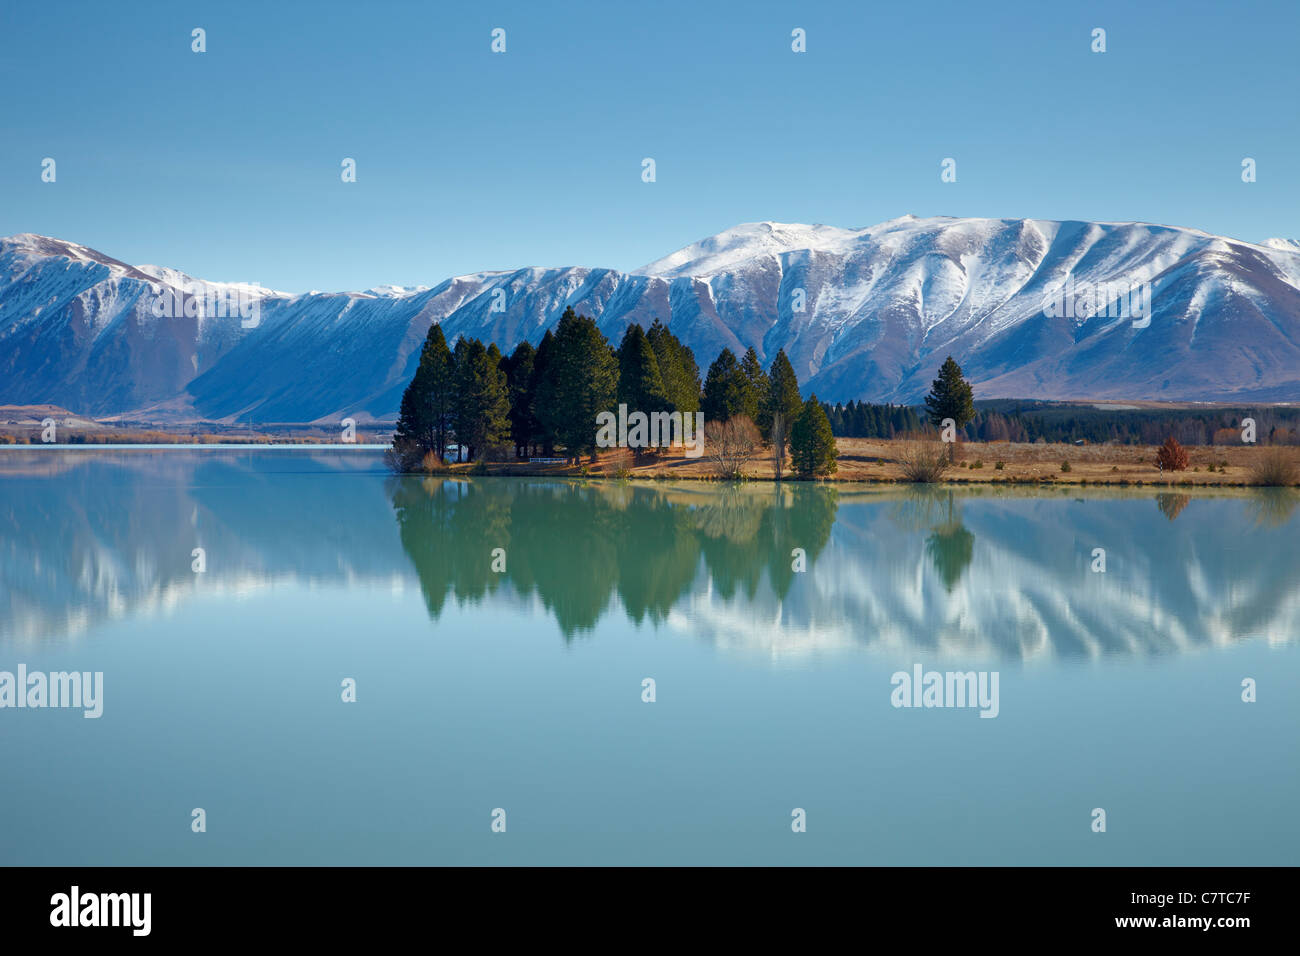 Lake Ruatinawha. The milky blue water reflects the snowy mountain and trees on Lake Ruatinawha. - Stock Image